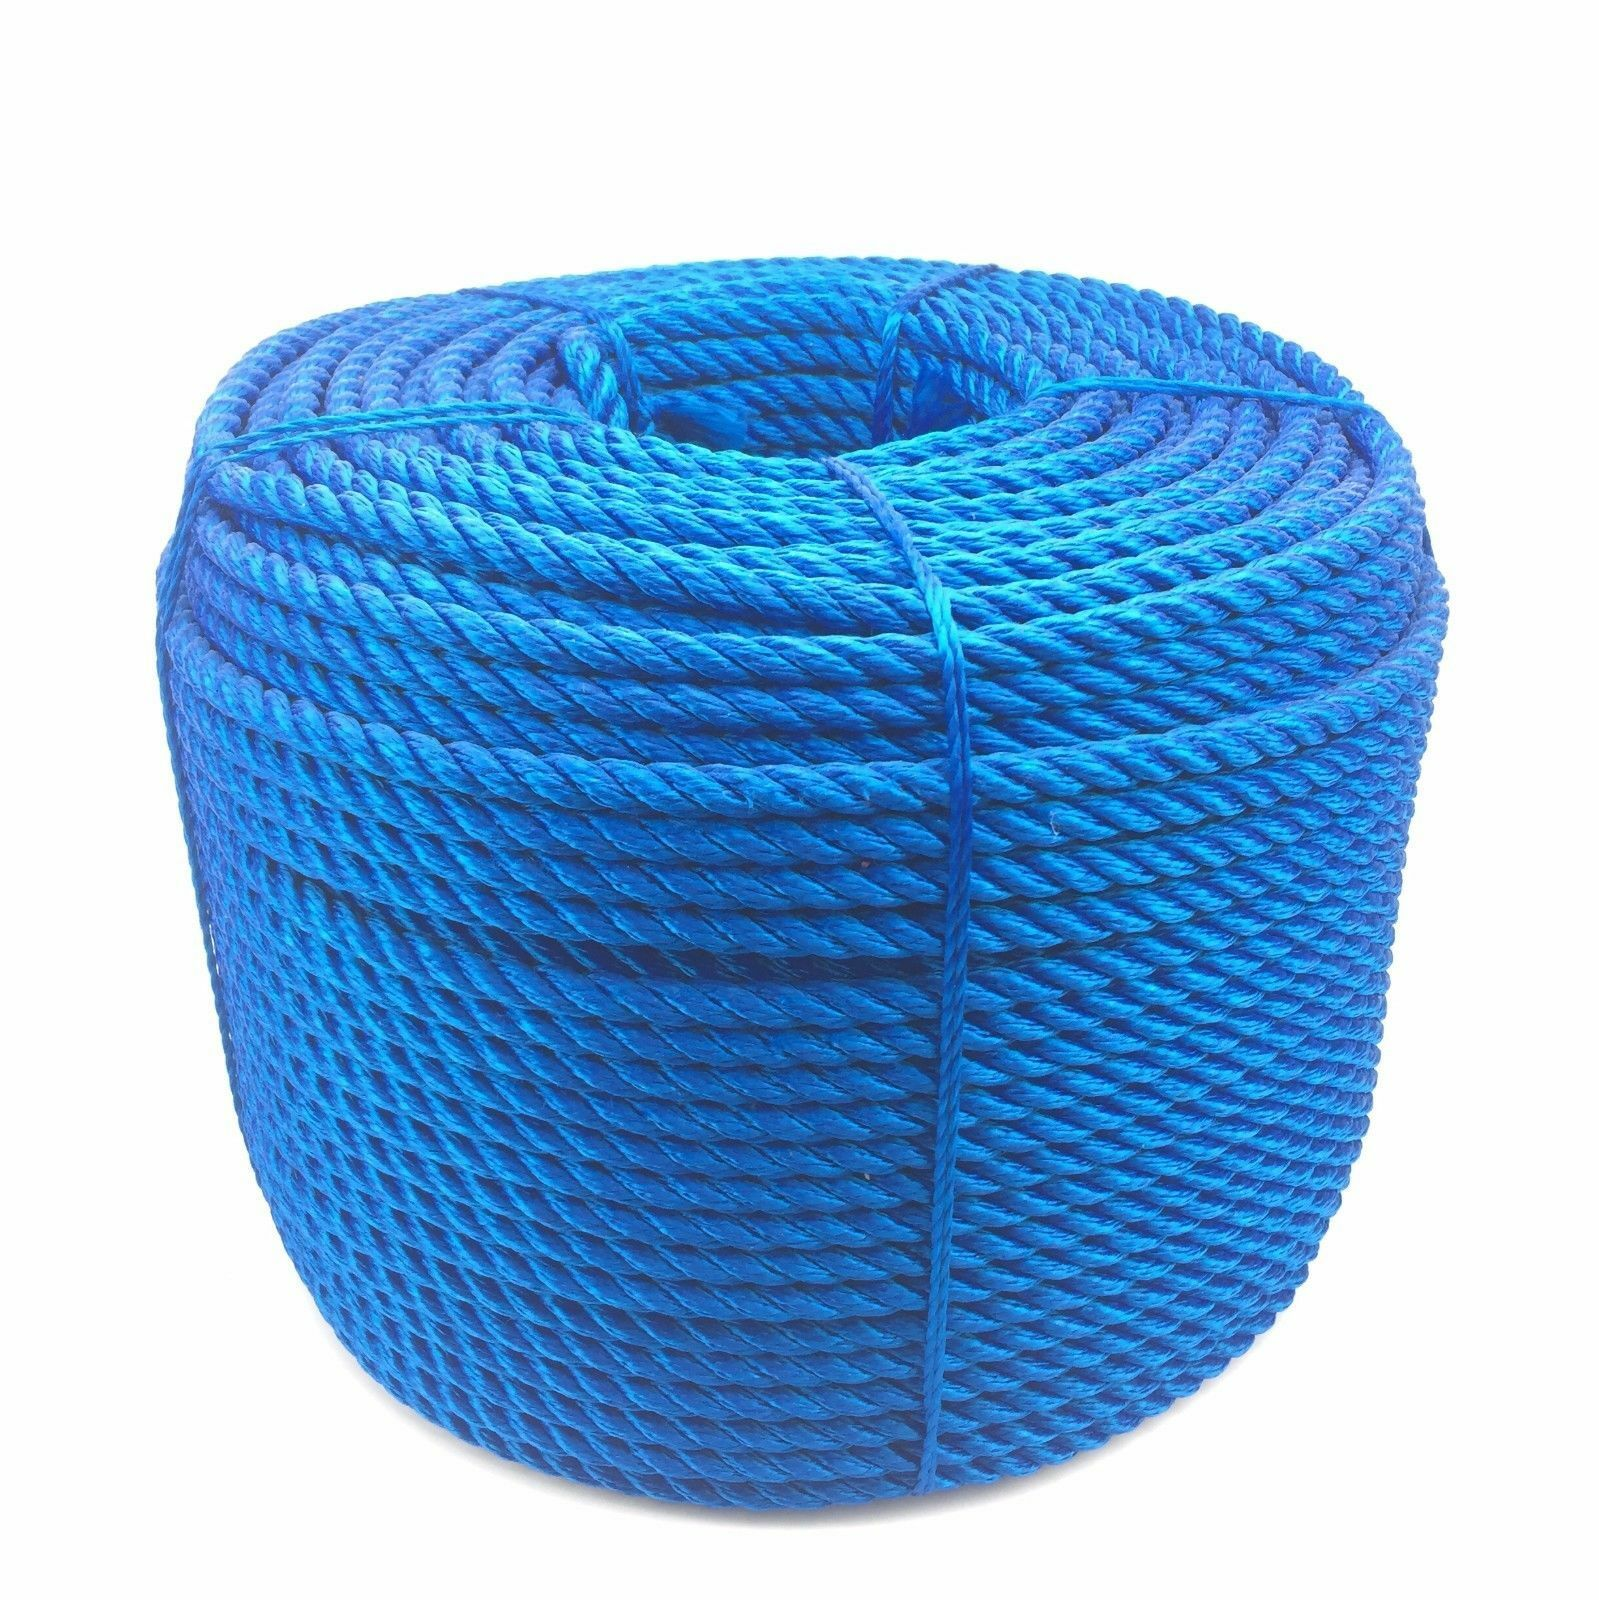 14mm Royal bluee 3 Strand Multifilament x 30 Metres, Floating Rope Softline Rope